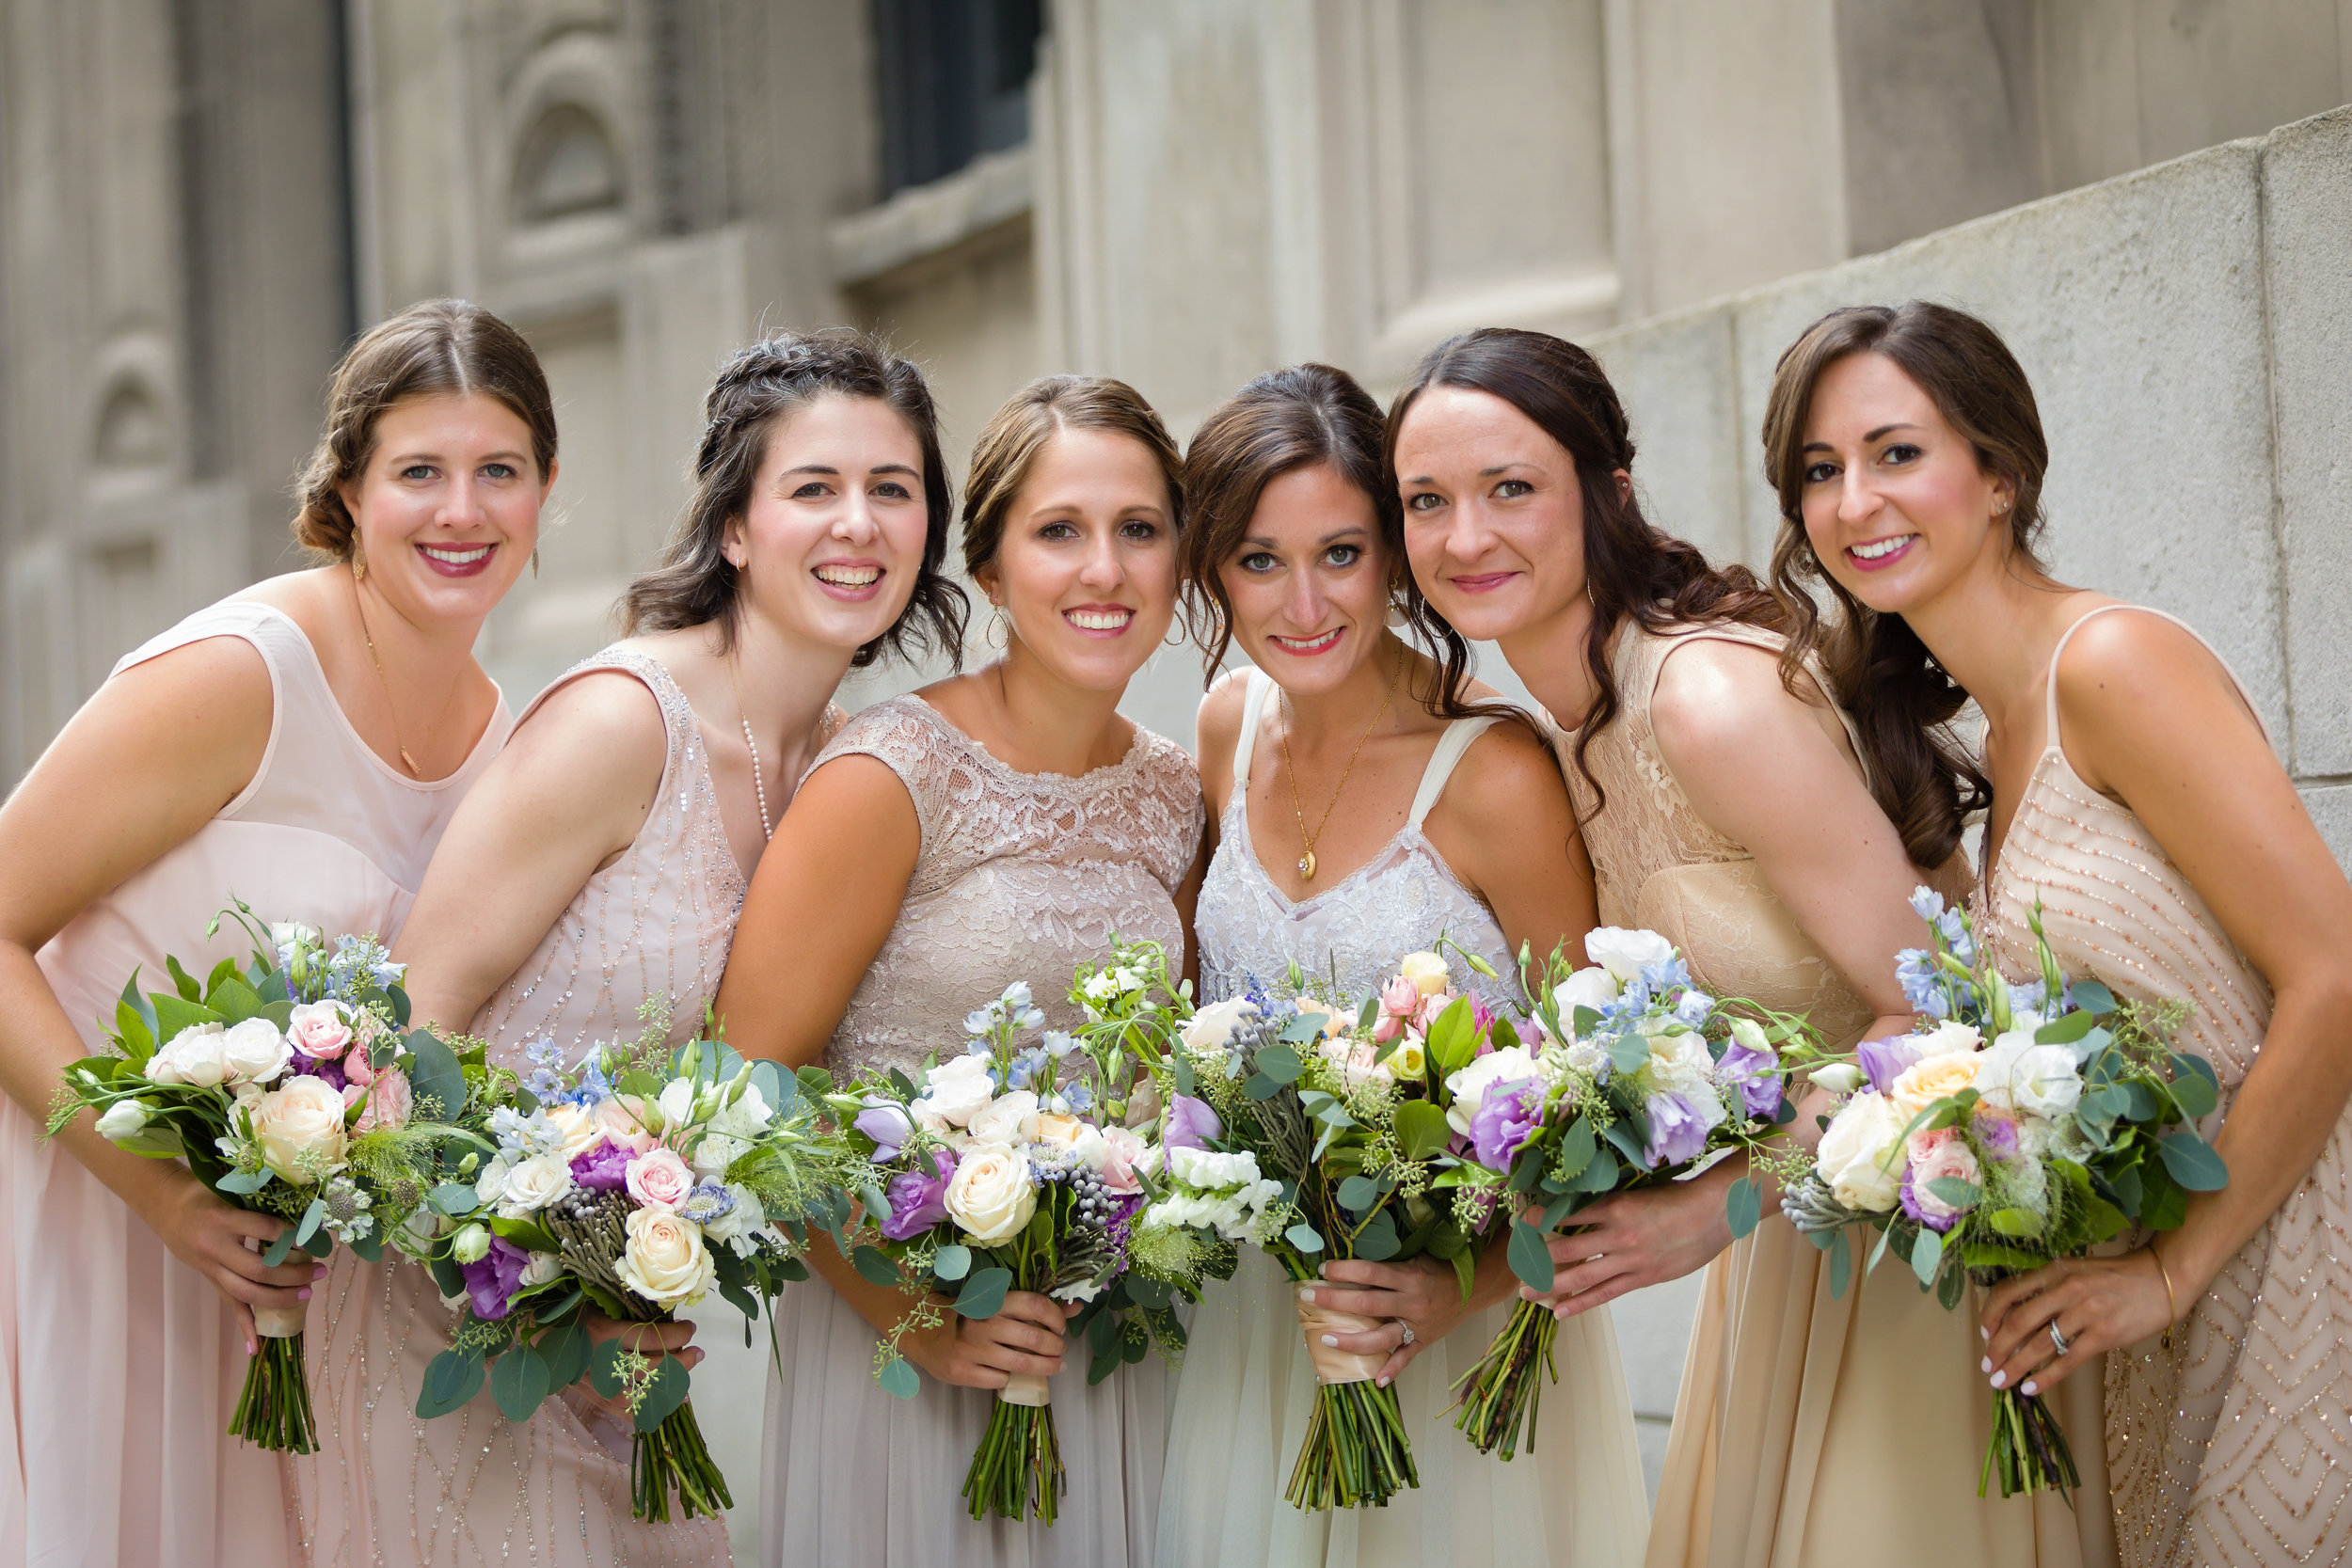 A Hotel Monaco Pittsburgh Wedding - The Overwhelmed Bride Wedding Inspiration Ideas Blog